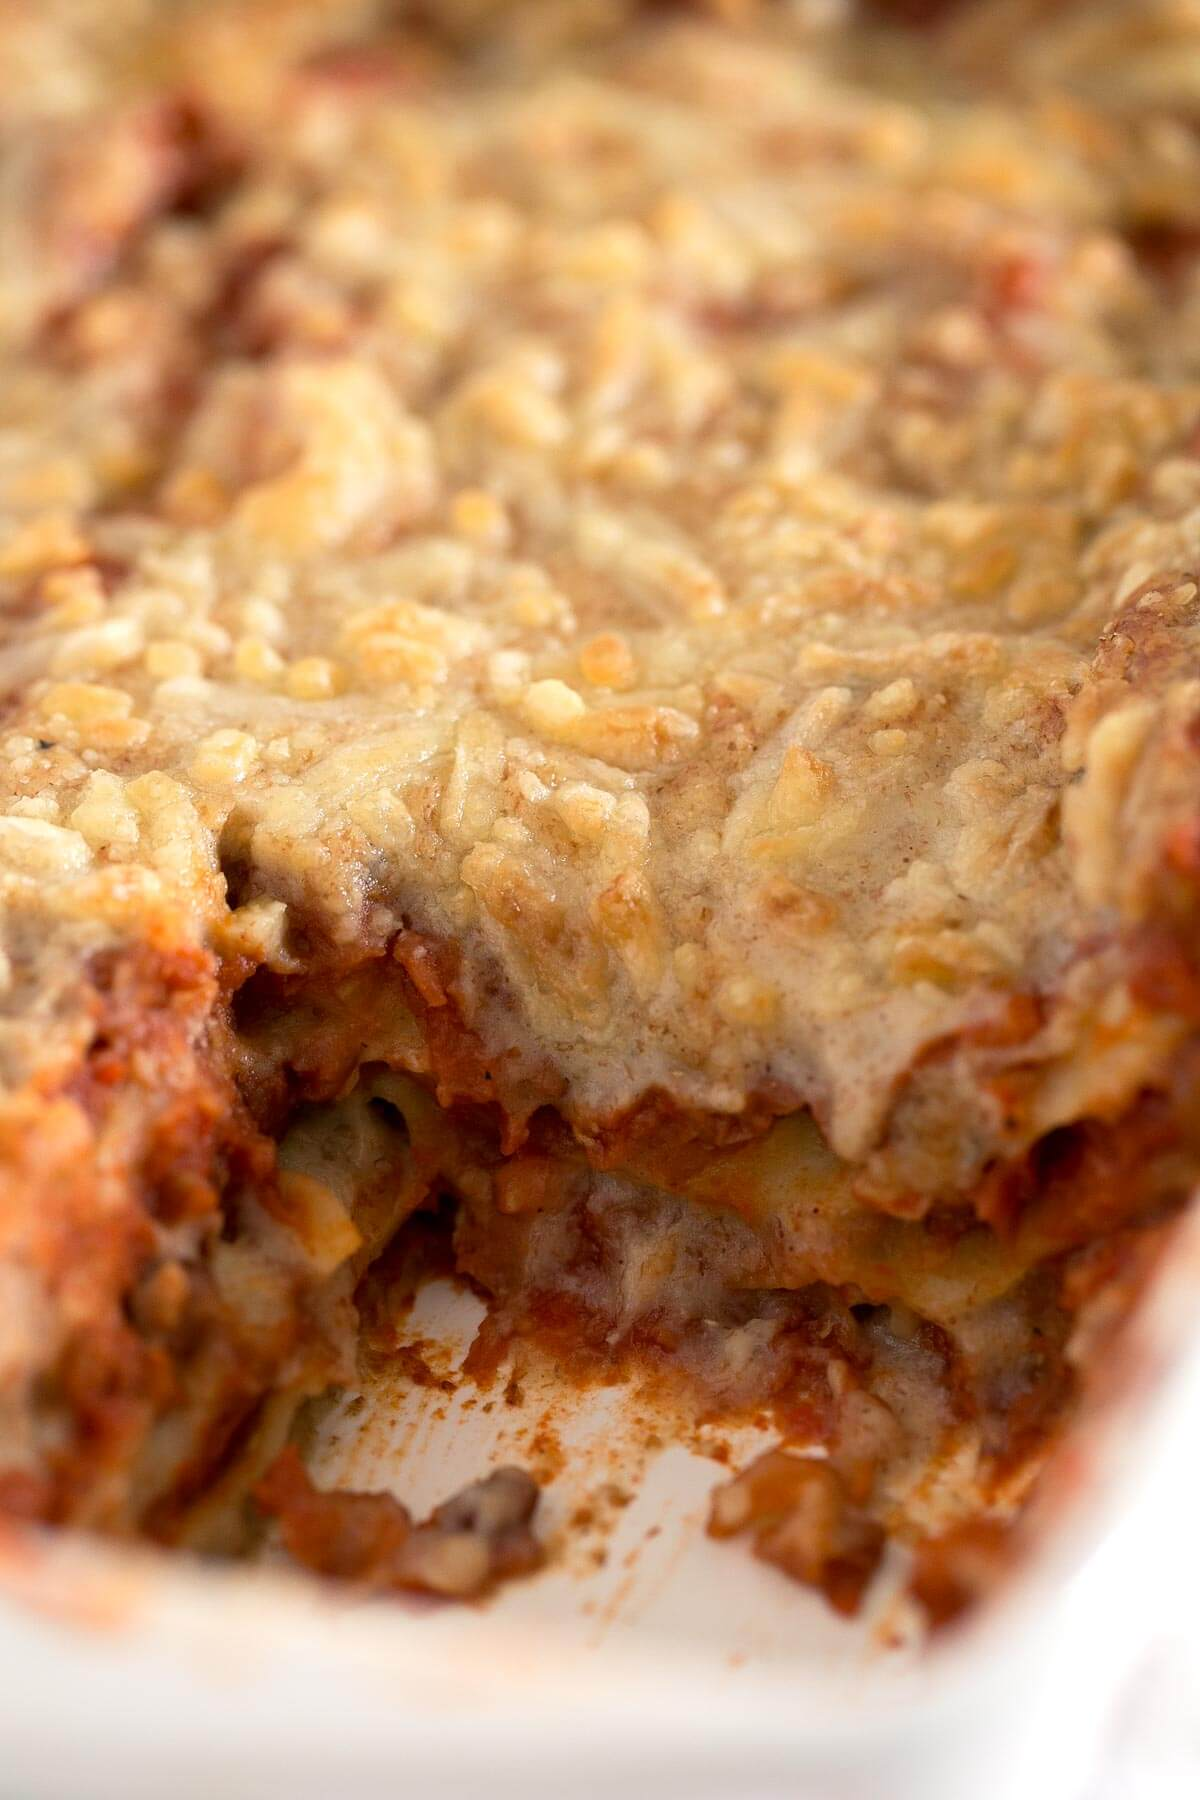 Vegan Lasagna. - Preparing a delicious vegan lasagna at home is incredibly easy and has nothing to envy the traditional one. In addition, it is healthier, lighter and more nutritious.